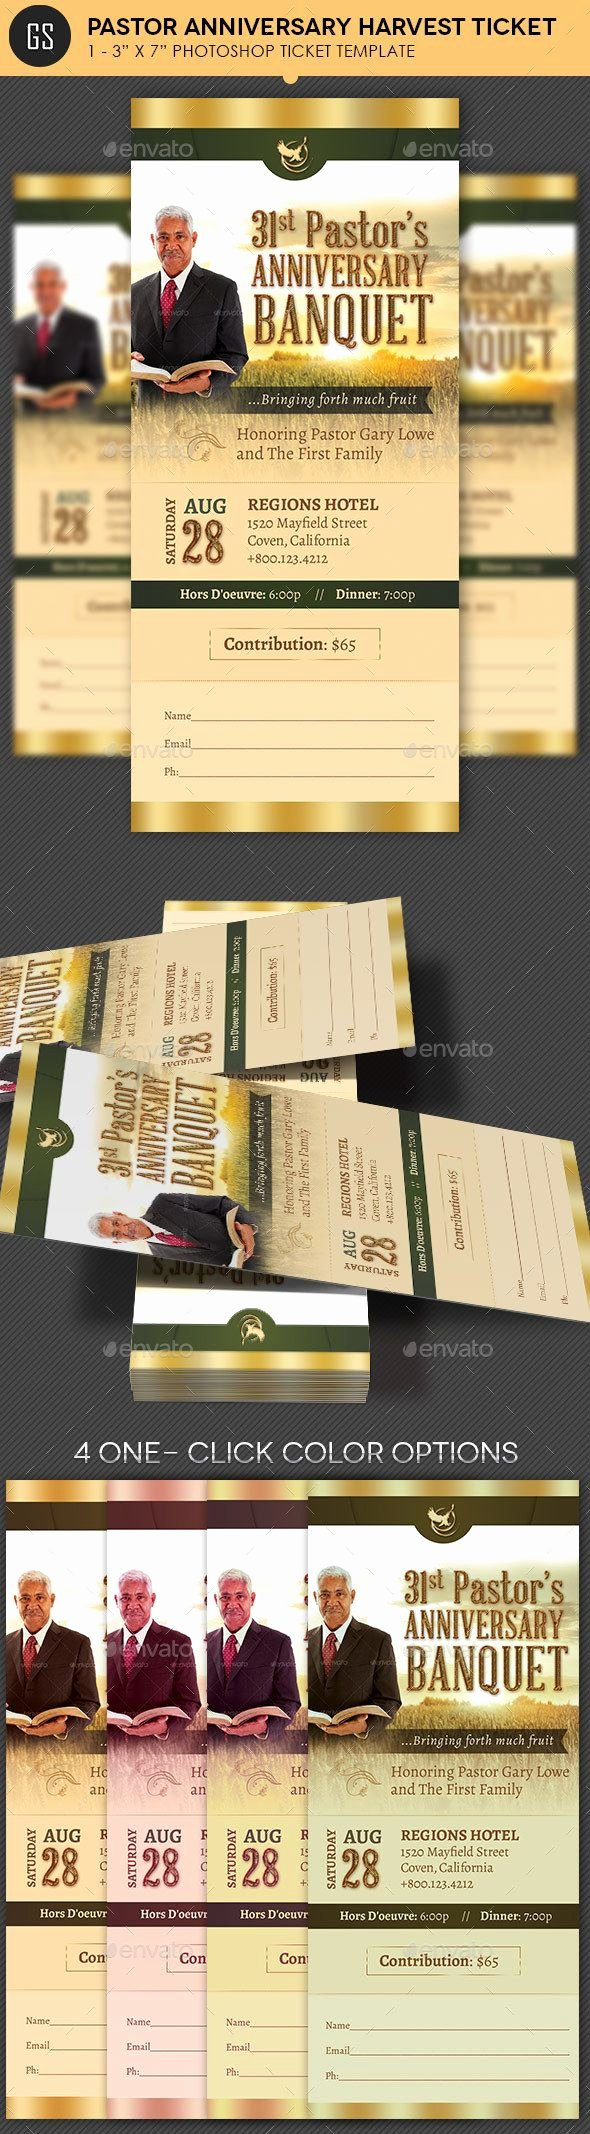 Pastor Appreciation Day Program Template New Pastor Anniversary Harvest Ticket Template — Psd Template